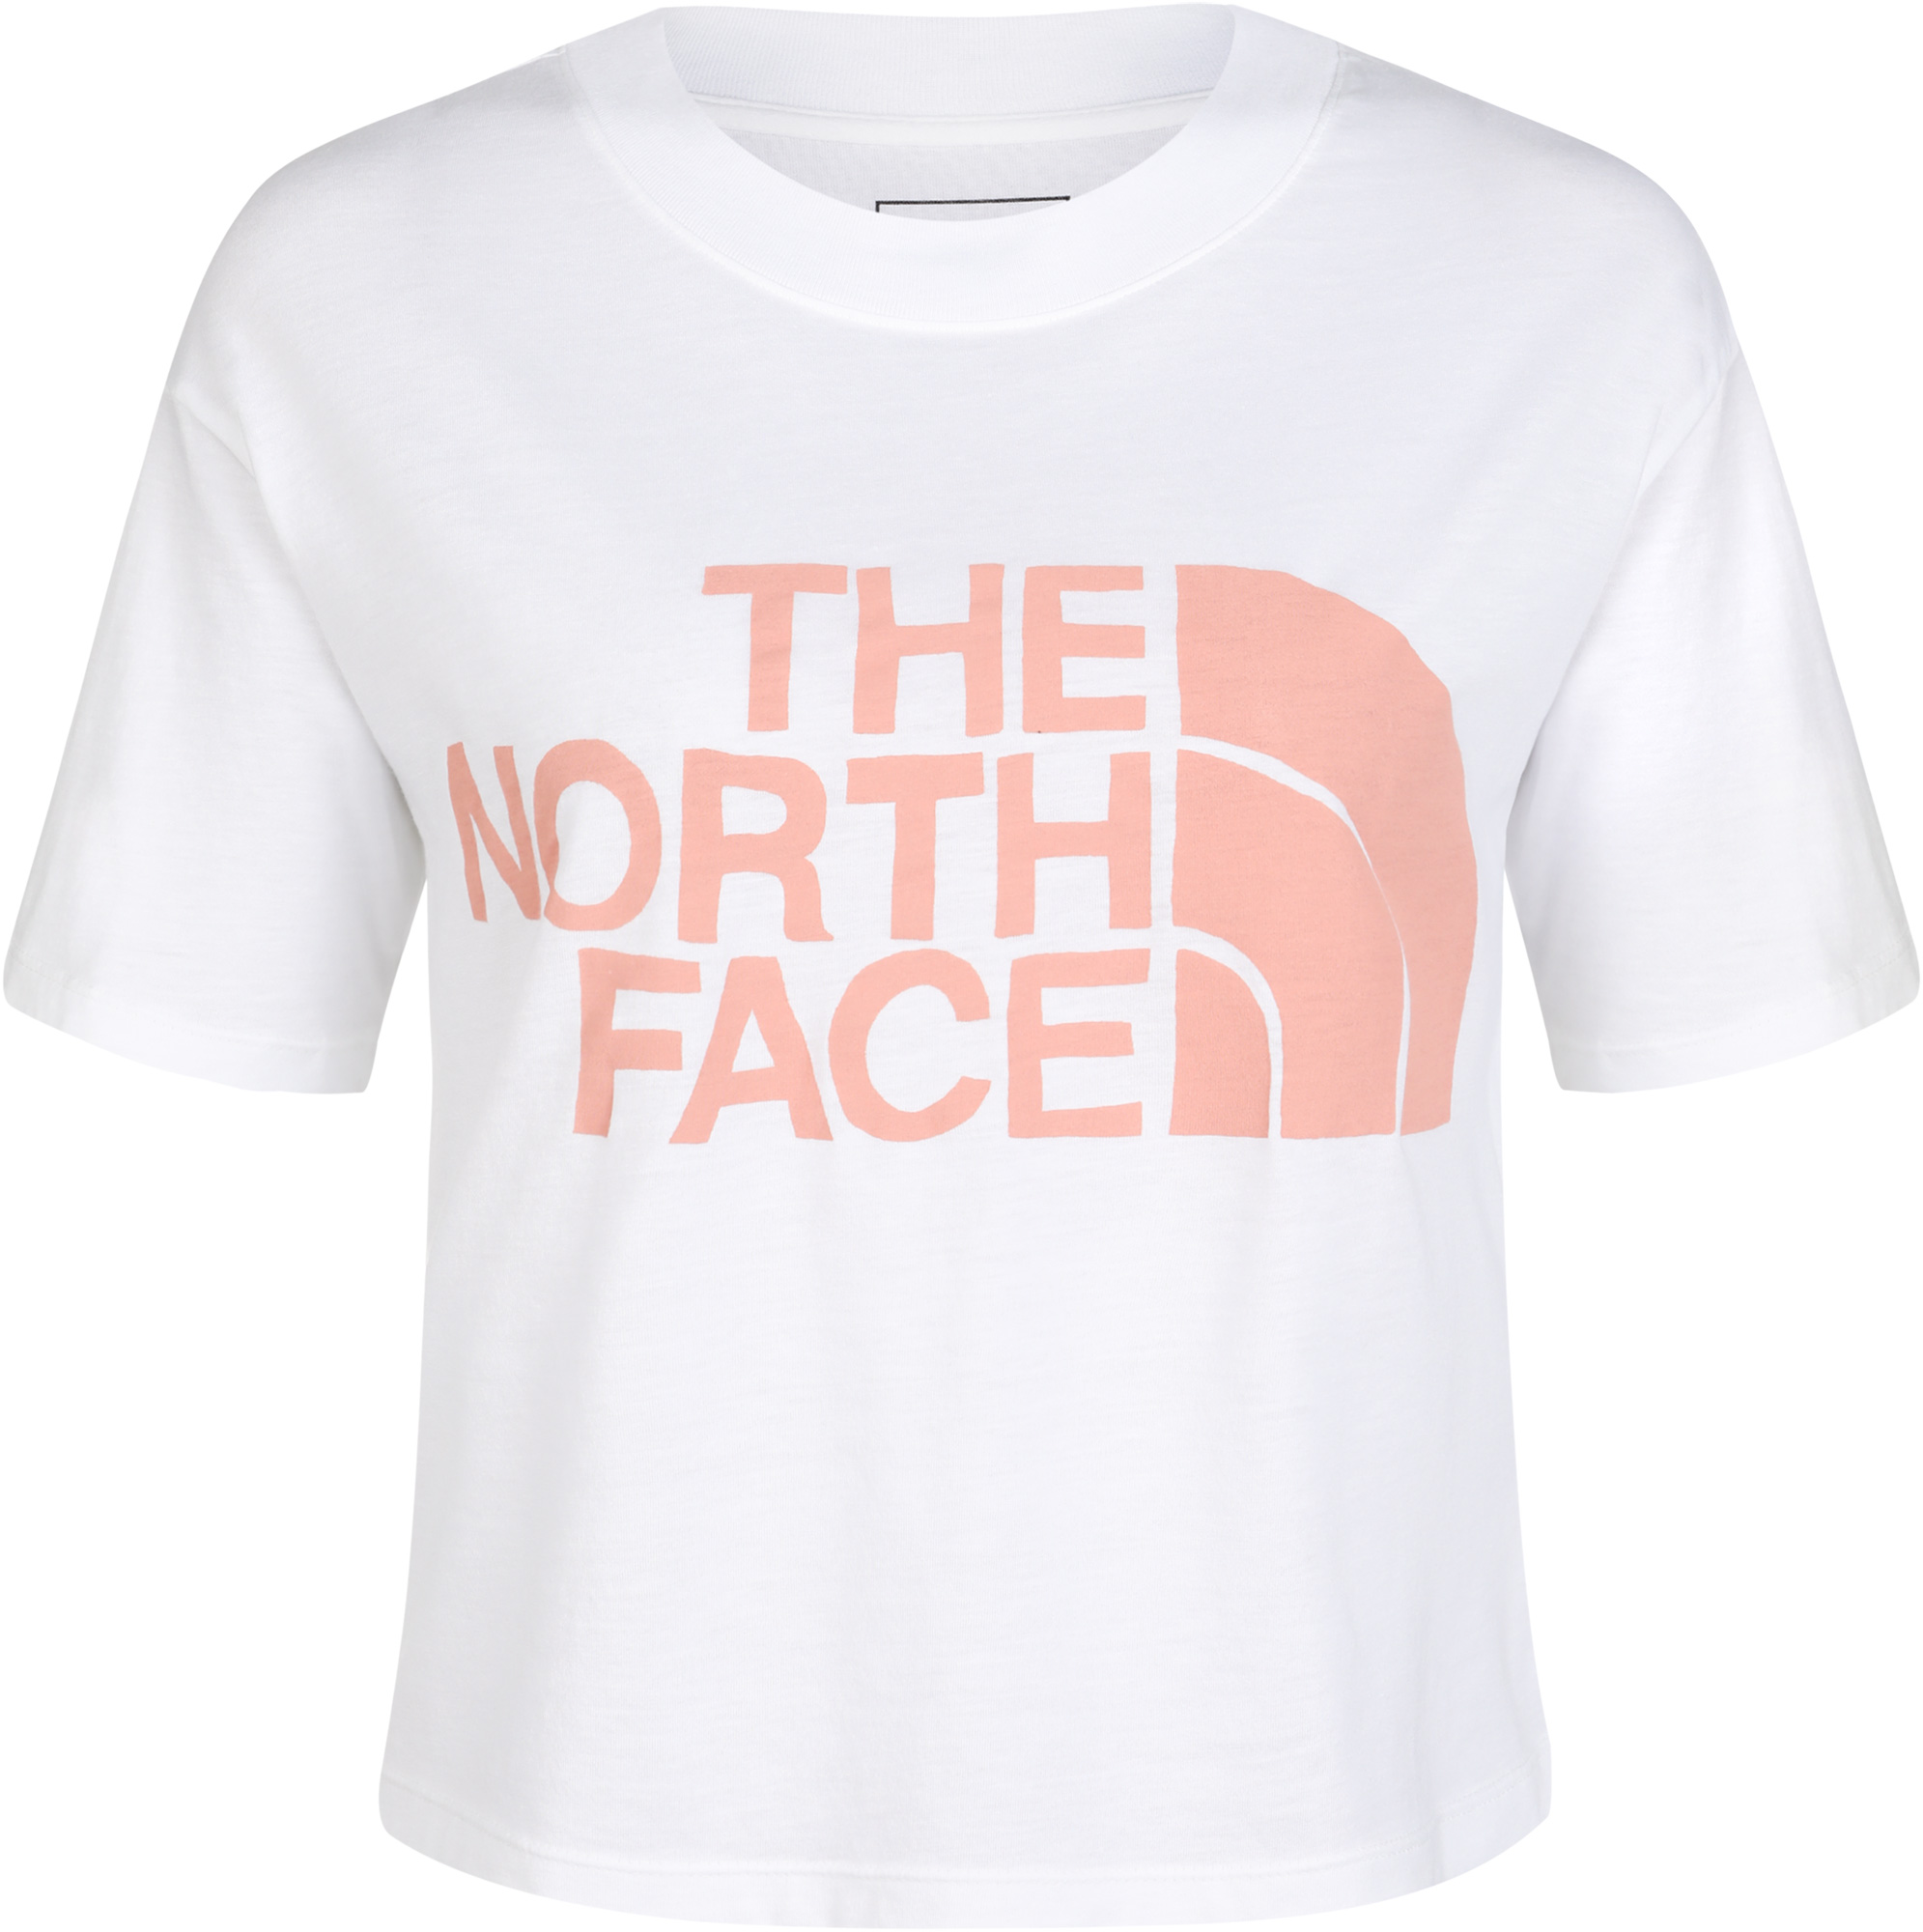 The North Face Футболка женская The North Face, размер 42-44 недорого